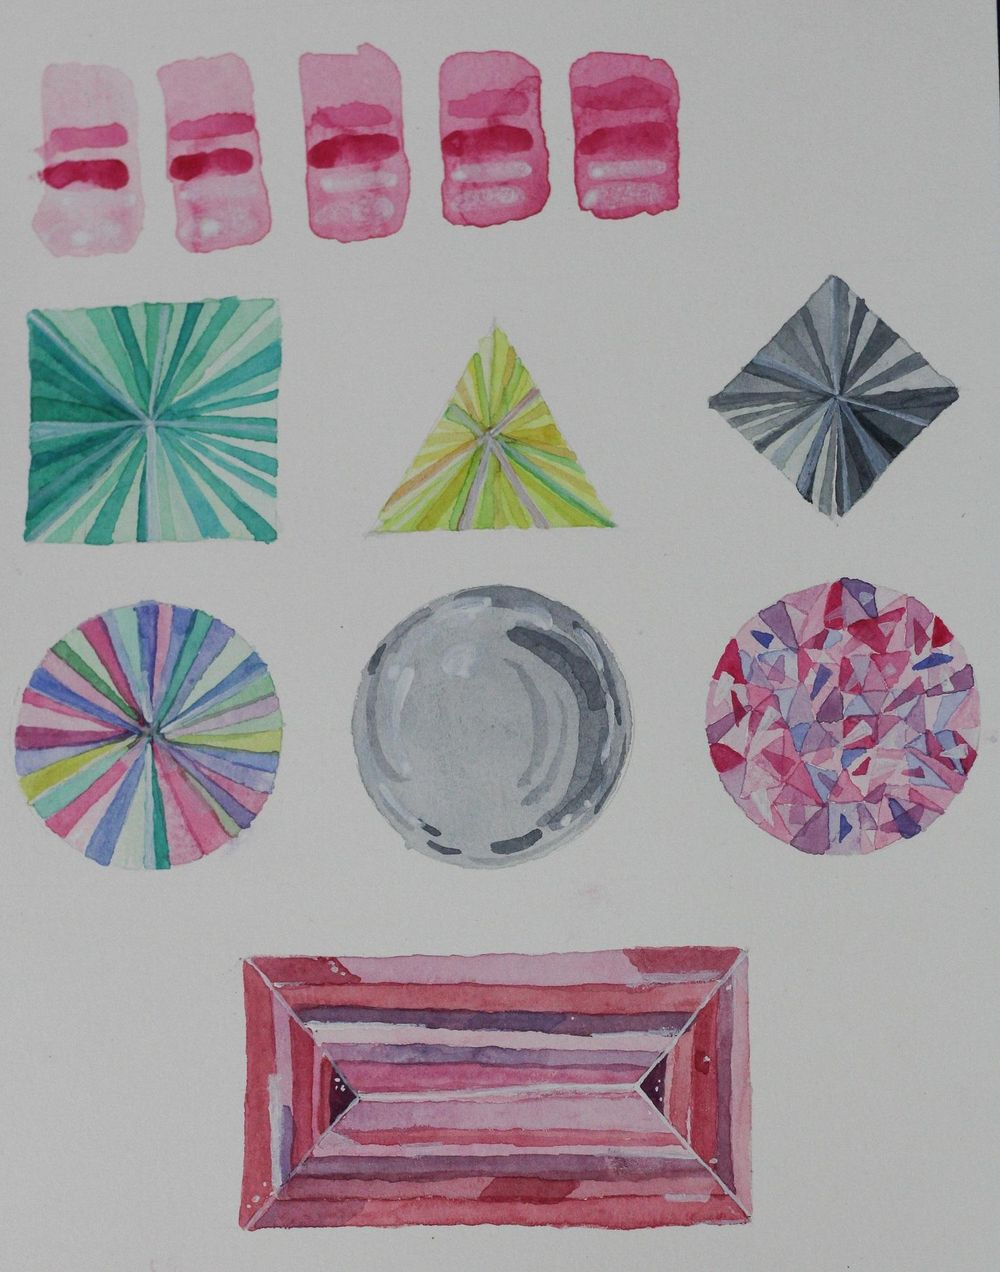 Gems & jewelry - image 1 - student project